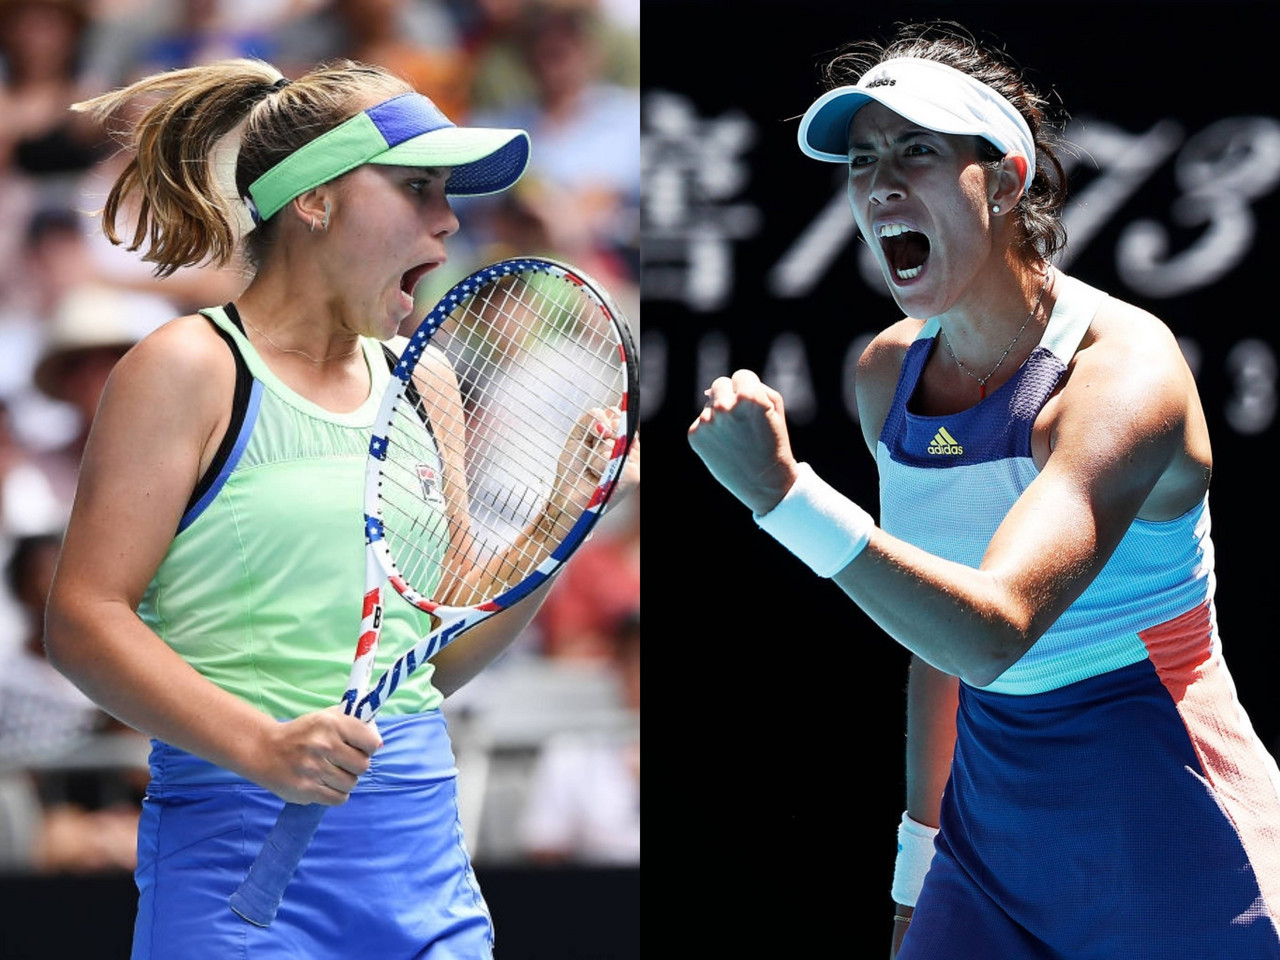 2020 Australian Open Women's Singles Final Preview: Sofia Kenin vs Garbine Muguruza